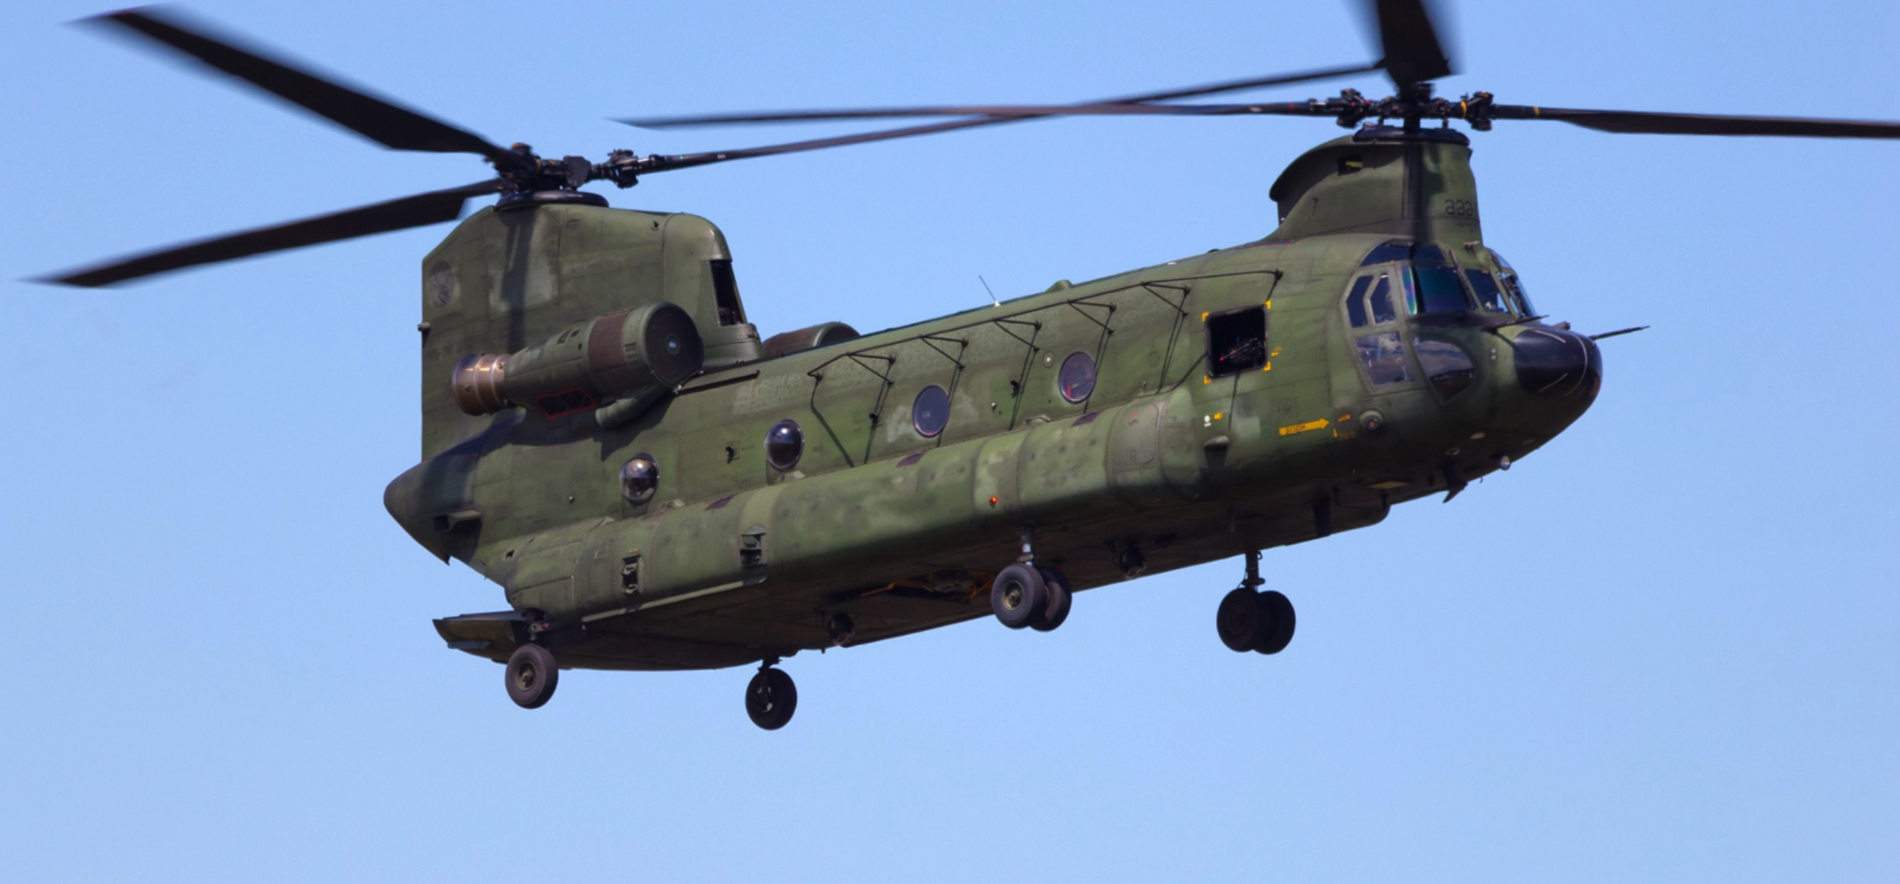 Chinook helicopter which needed to have parts in stock validated